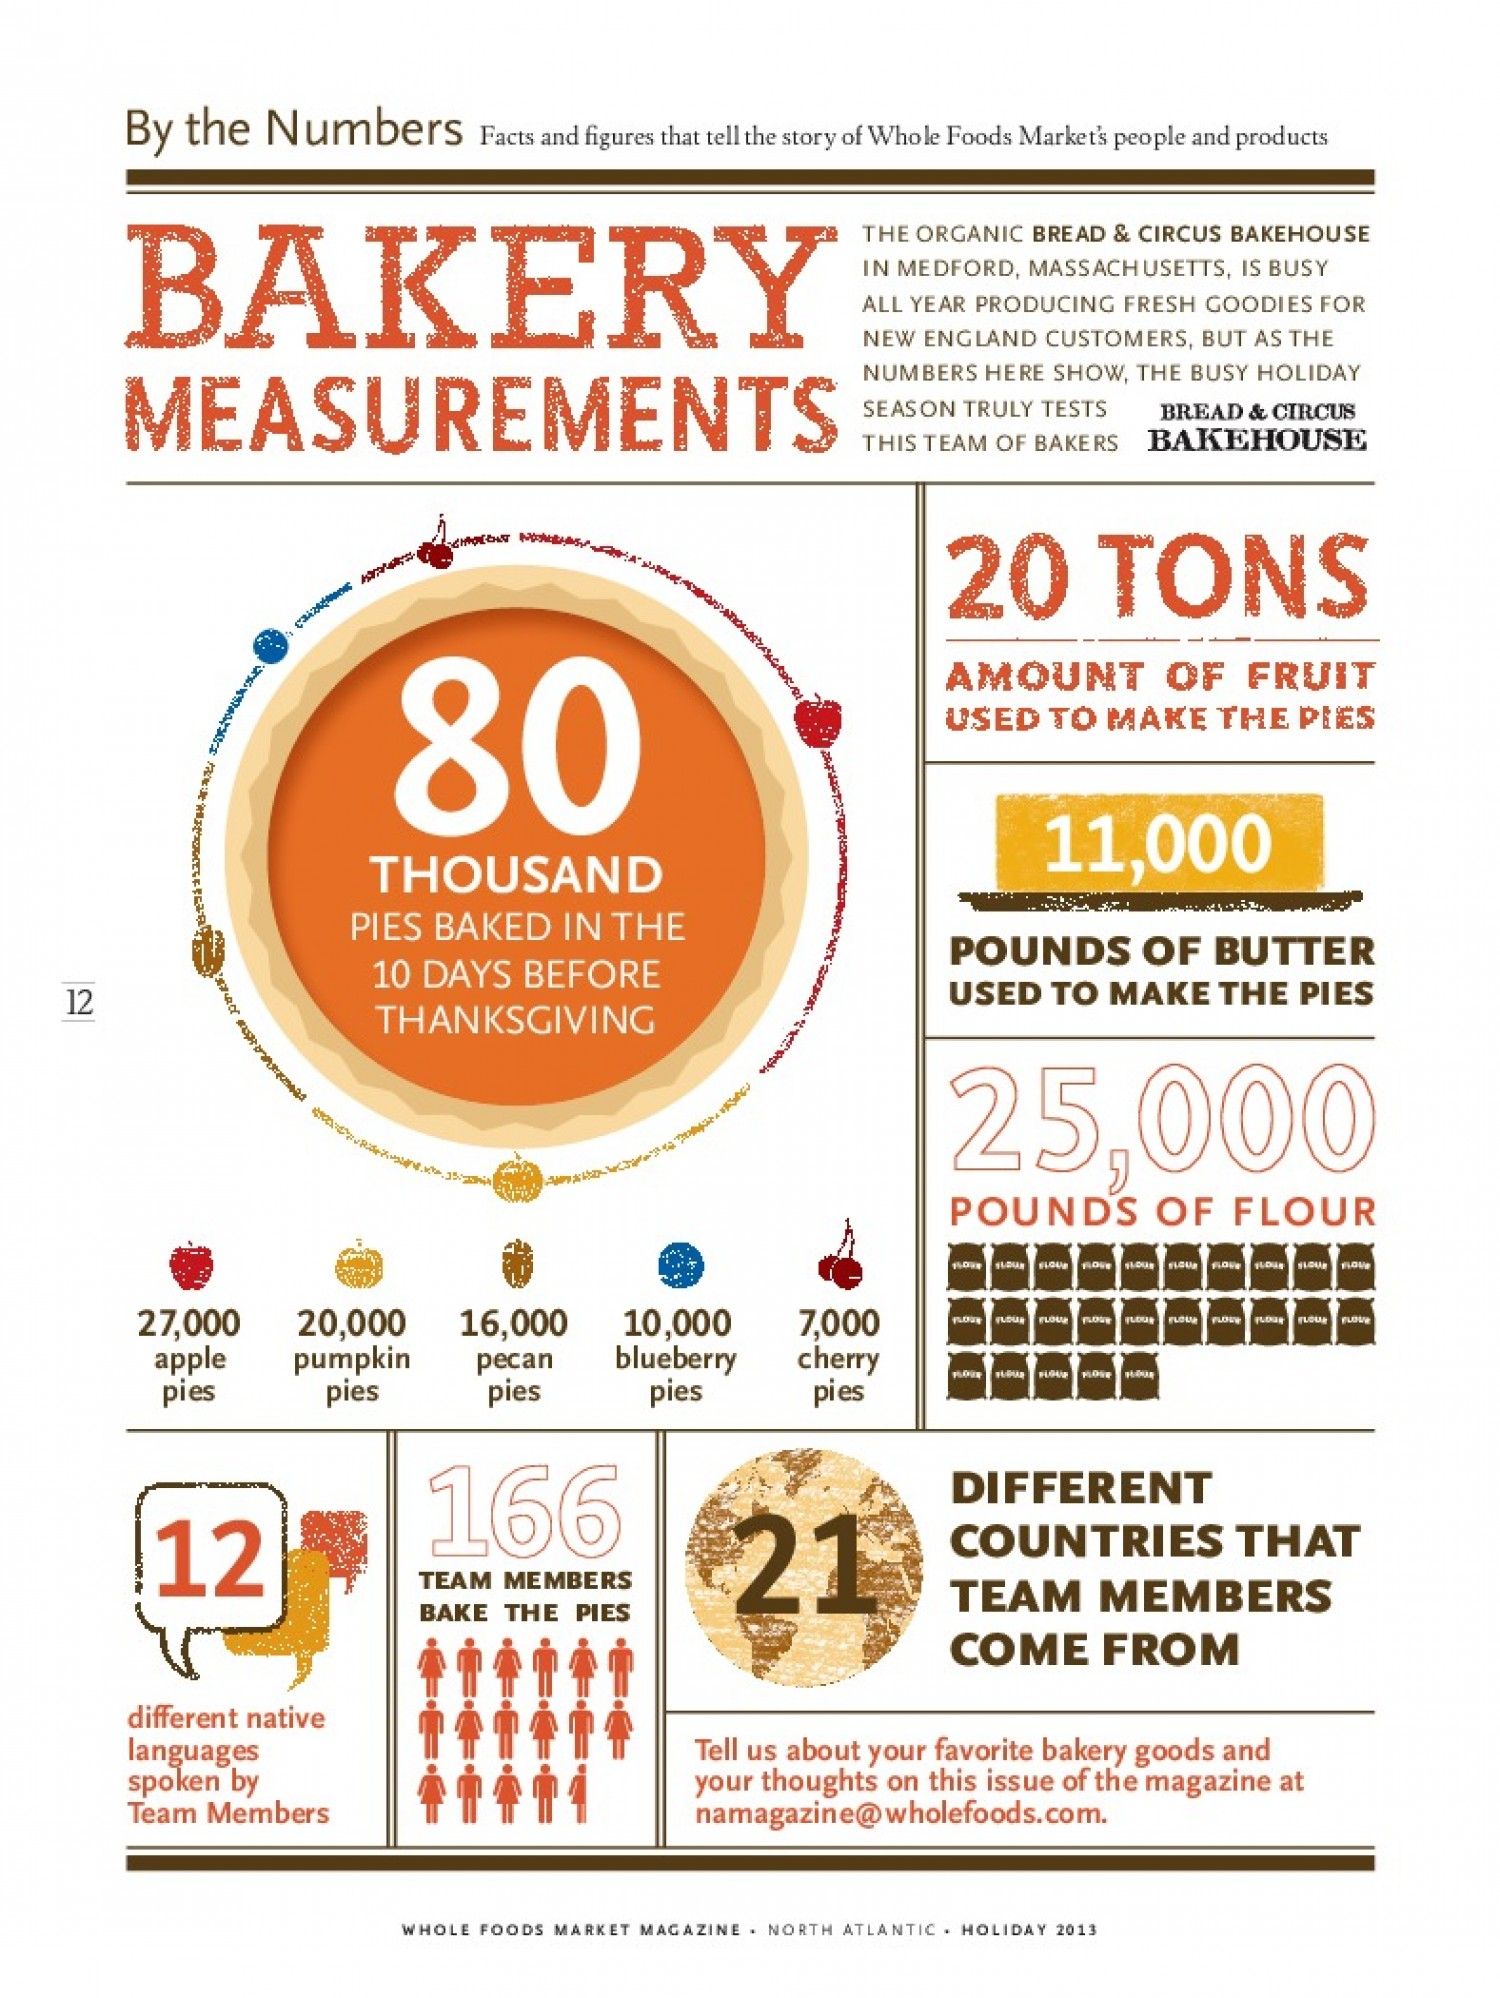 Bakery Products Market Trends